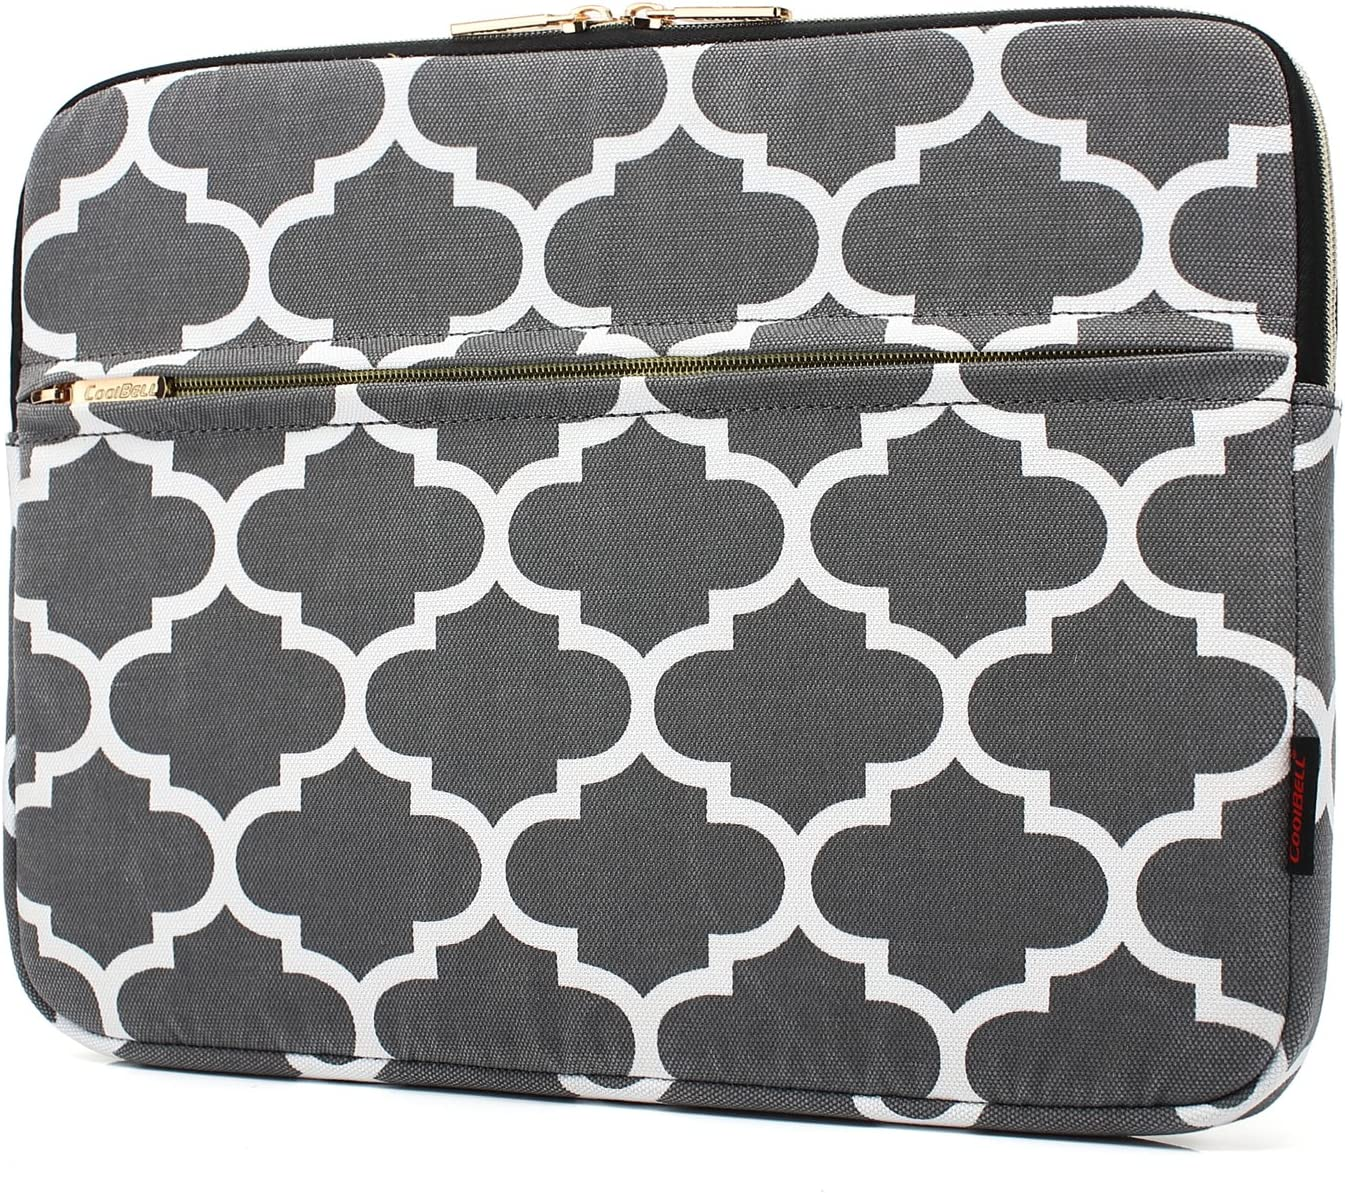 CoolBELL 15.6 Inch Laptop Sleeve Bag With Accessories Front Pocket/Fabric Laptop Protective Case For Dell/HP/Acer/ASUS/Lenovo/Ultra-book/Macbook Pro/Macbook Air / (Dark Grey)